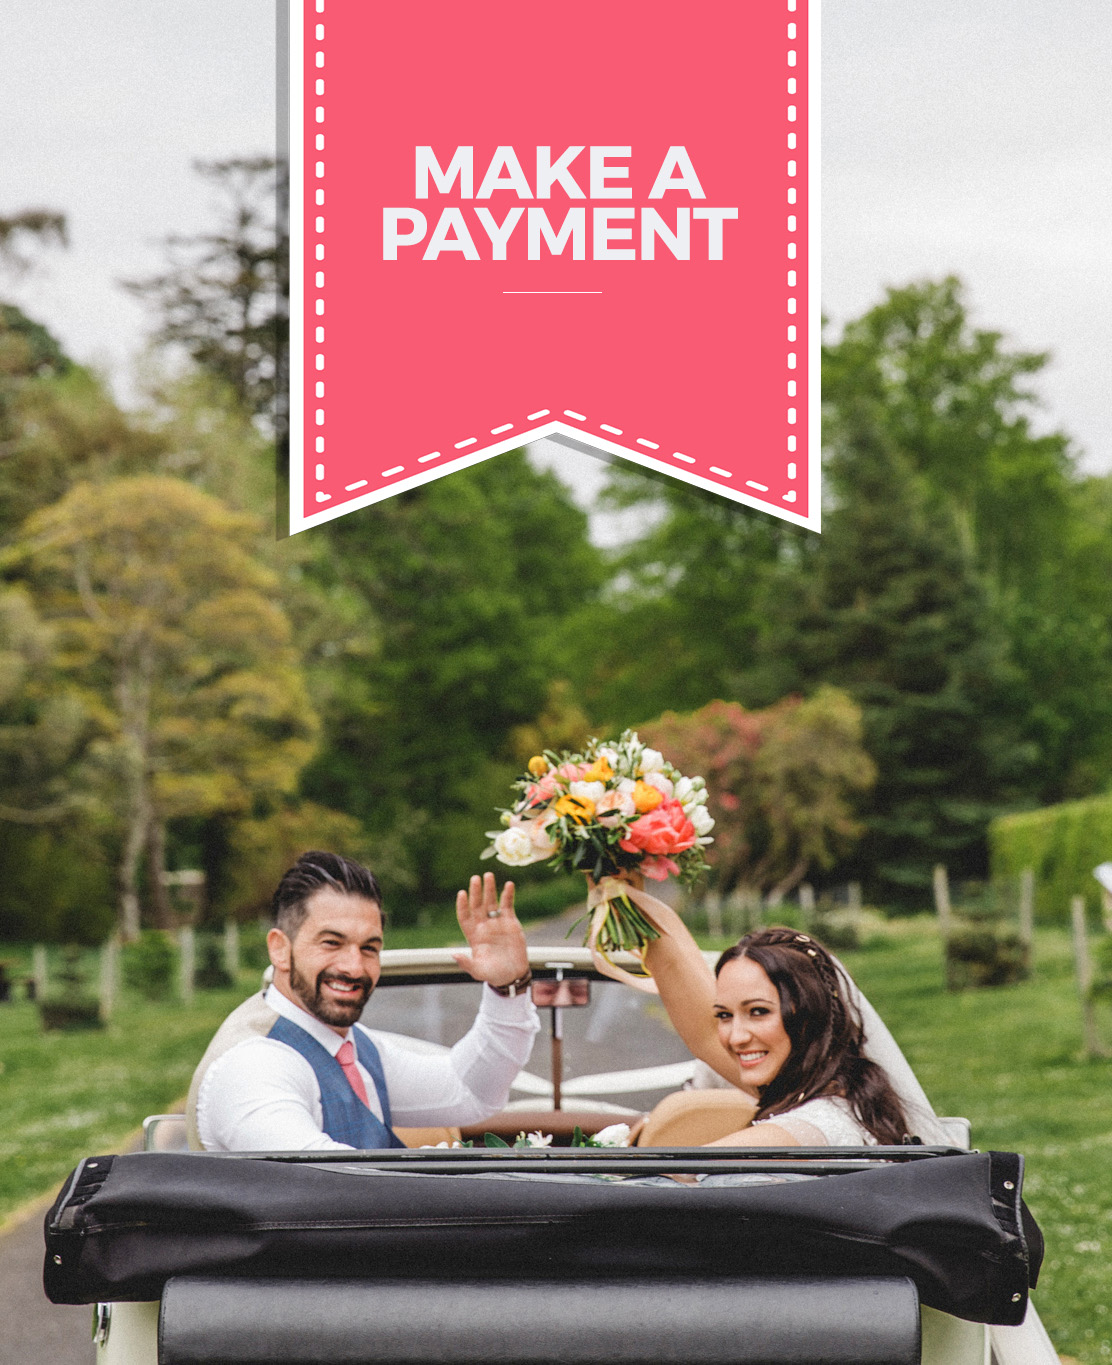 make a payment to glasgow wedding cars